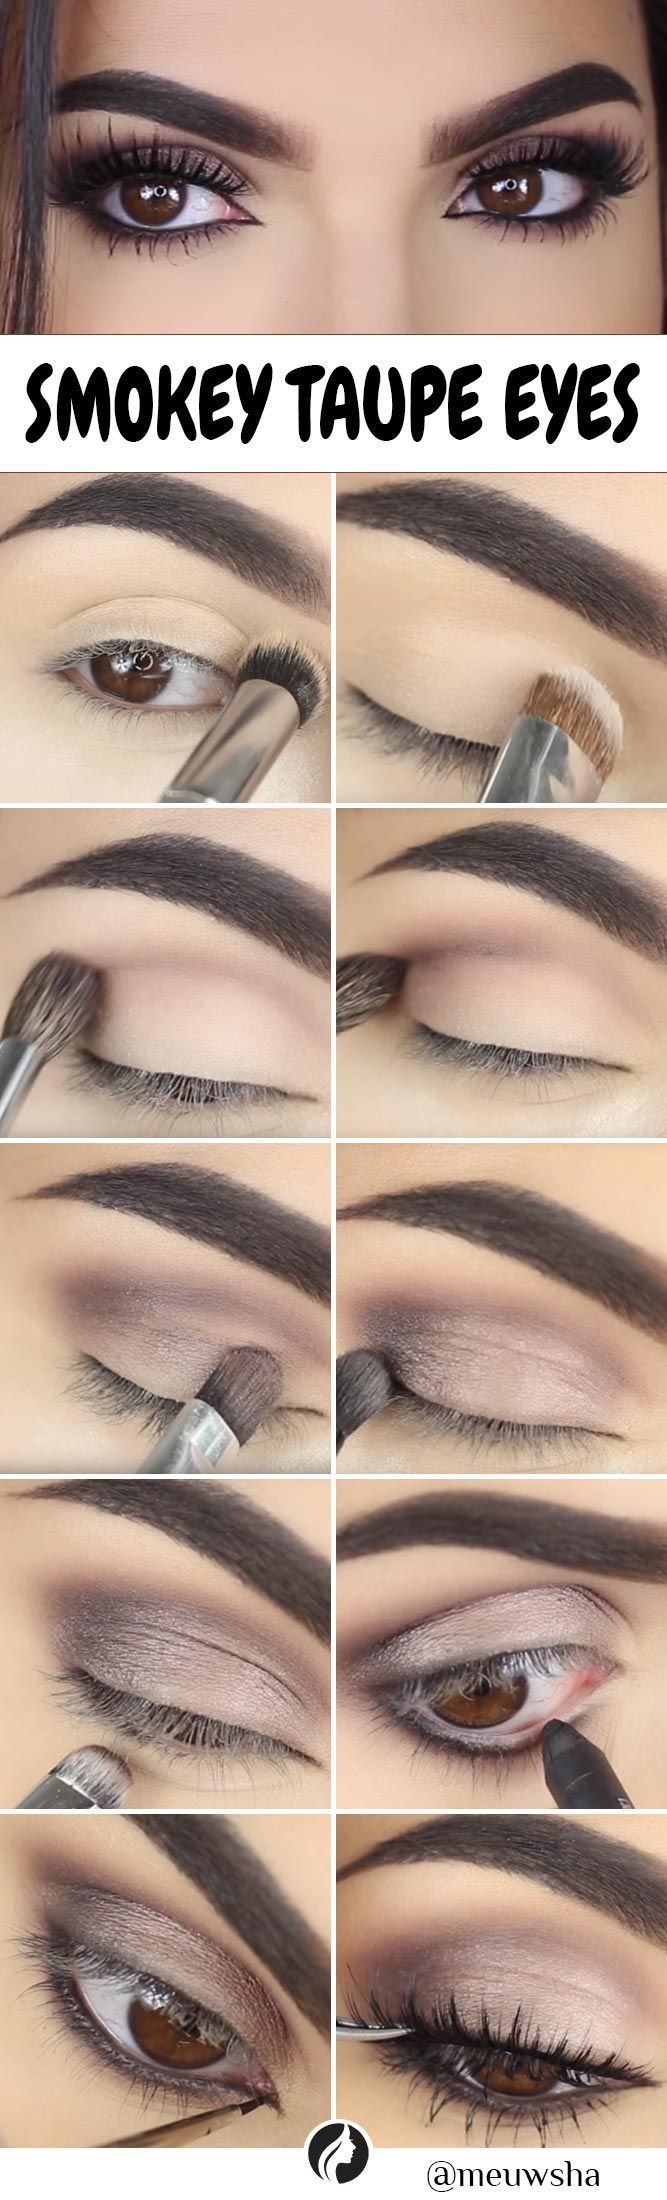 Smokey Taupe Eyes tutorial. Try a smokey eye look if you are searching for somet...